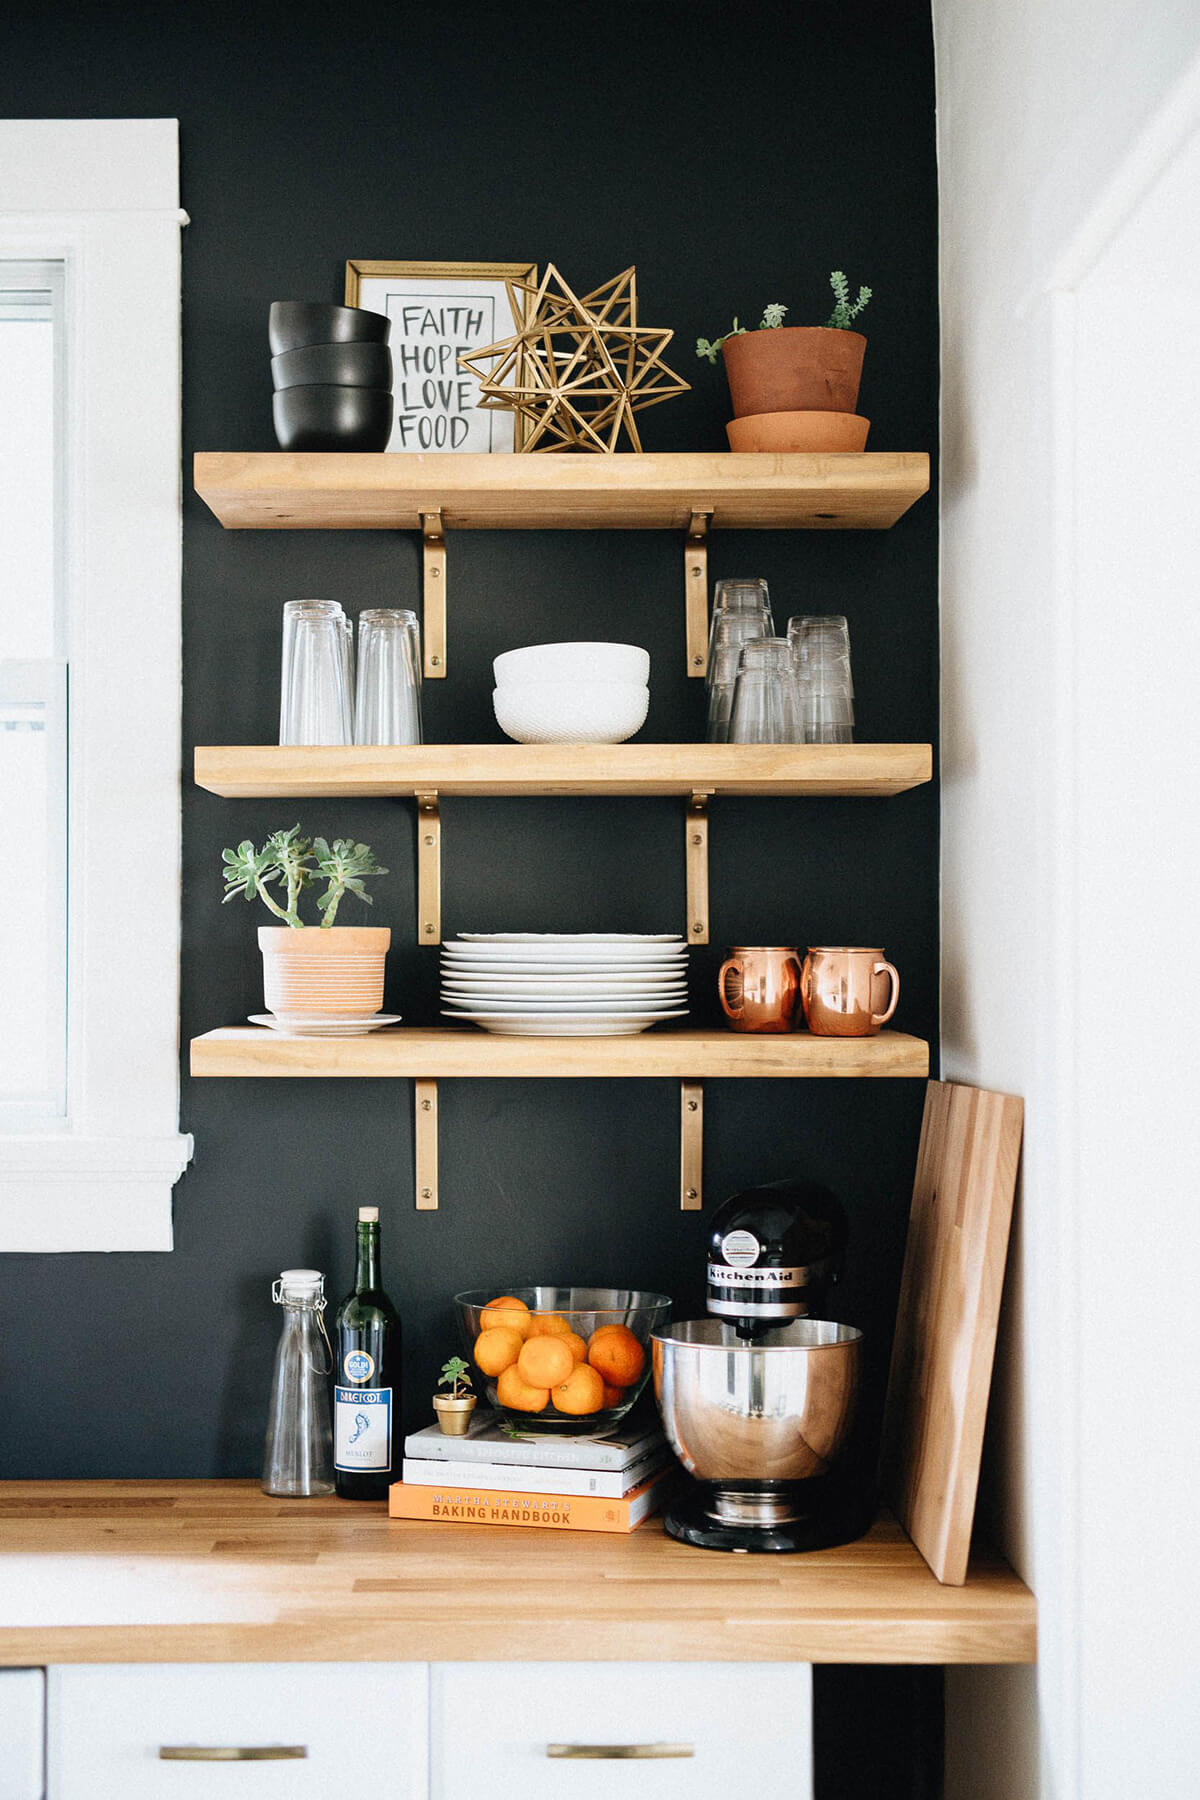 03-open-kitchen-shelf-ideas-homebnc